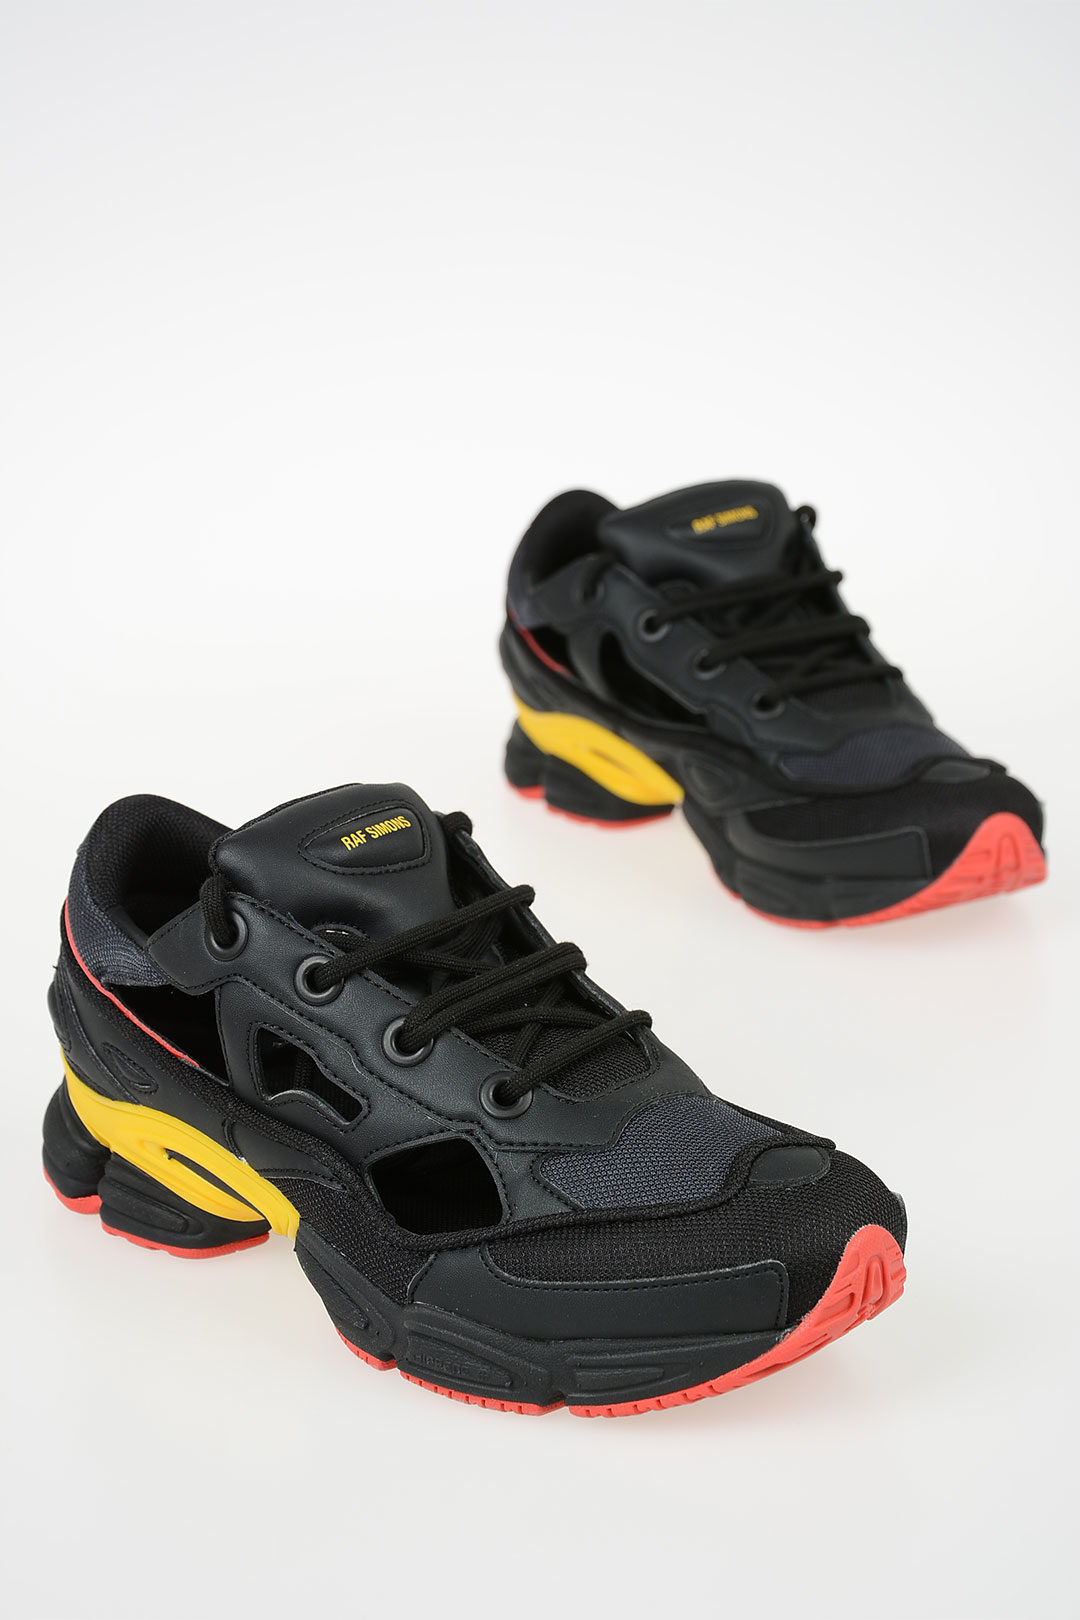 watch 3a723 49c53 RAF SIMONS Sneakers REPLICANT OZWEEGO + Socks